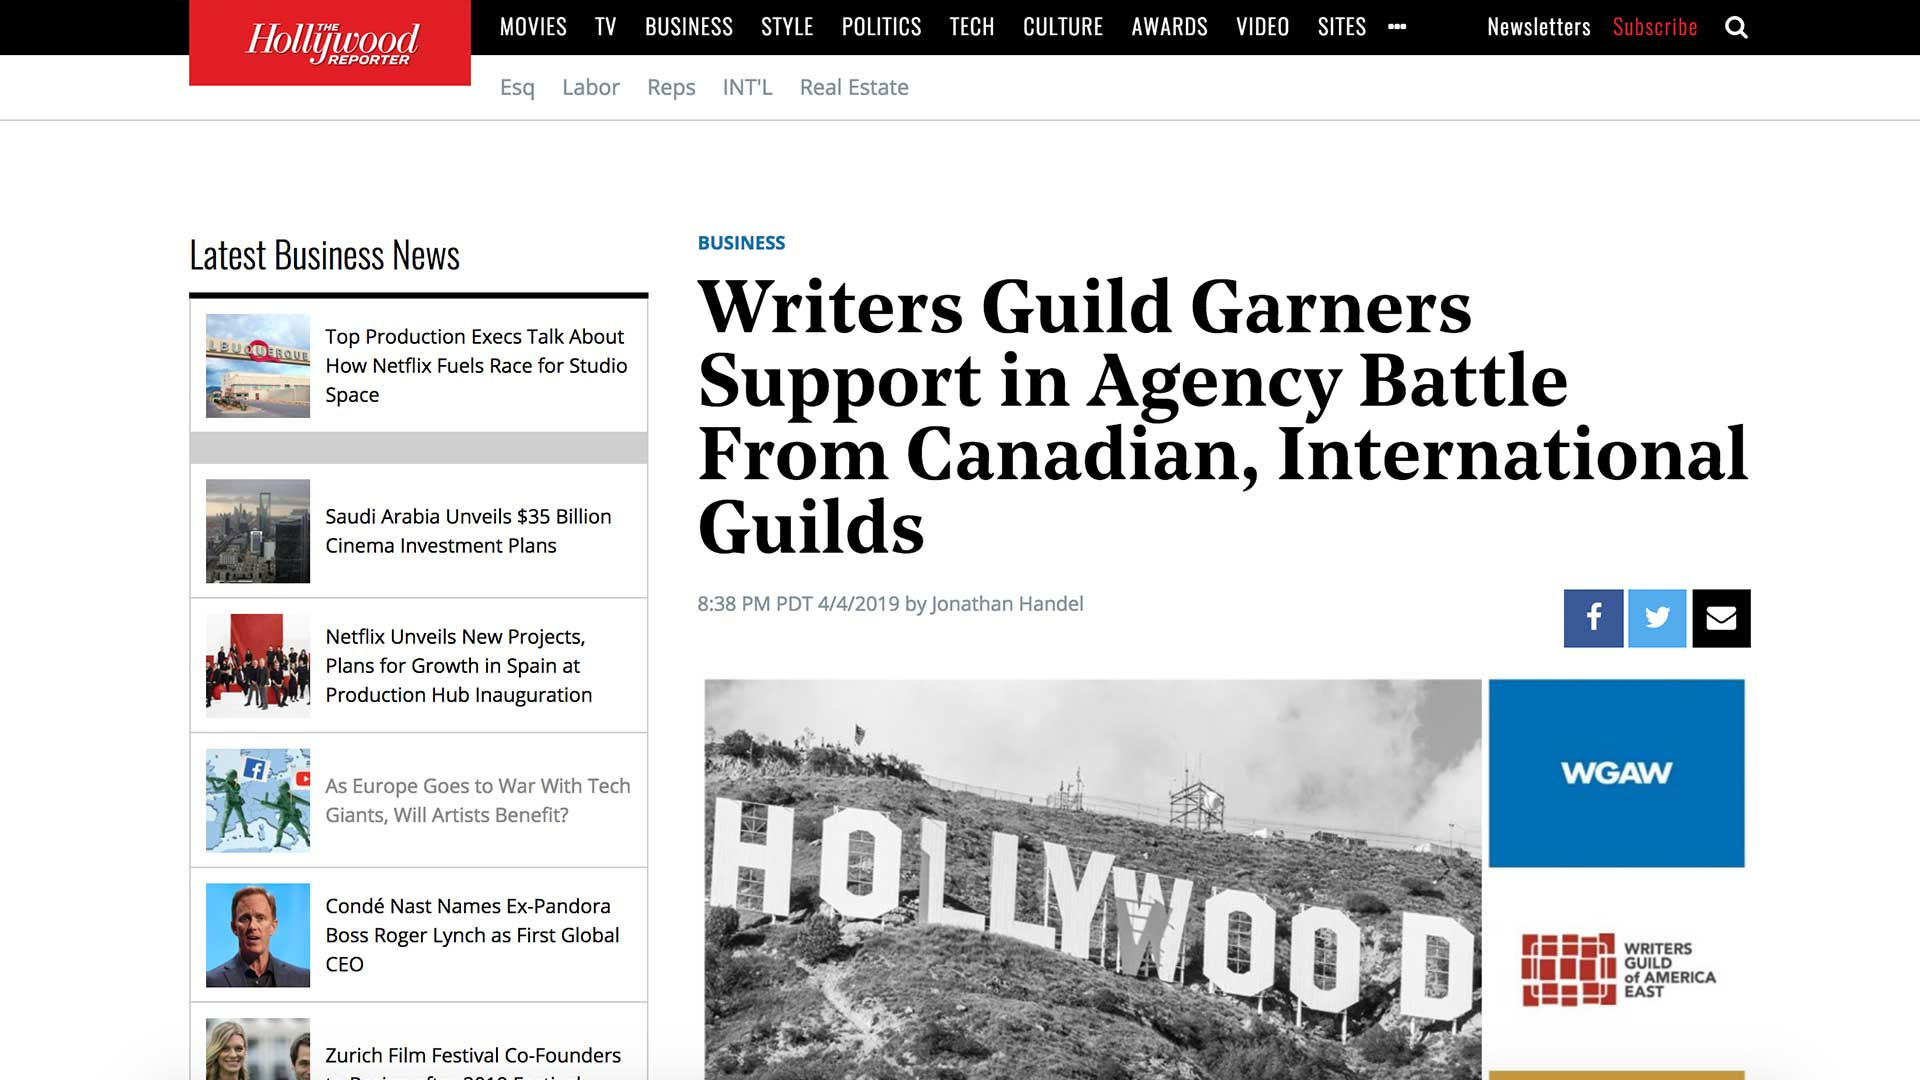 Fairness Rocks News Writers Guild Garners Support in Agency Battle From Canadian, International Guilds